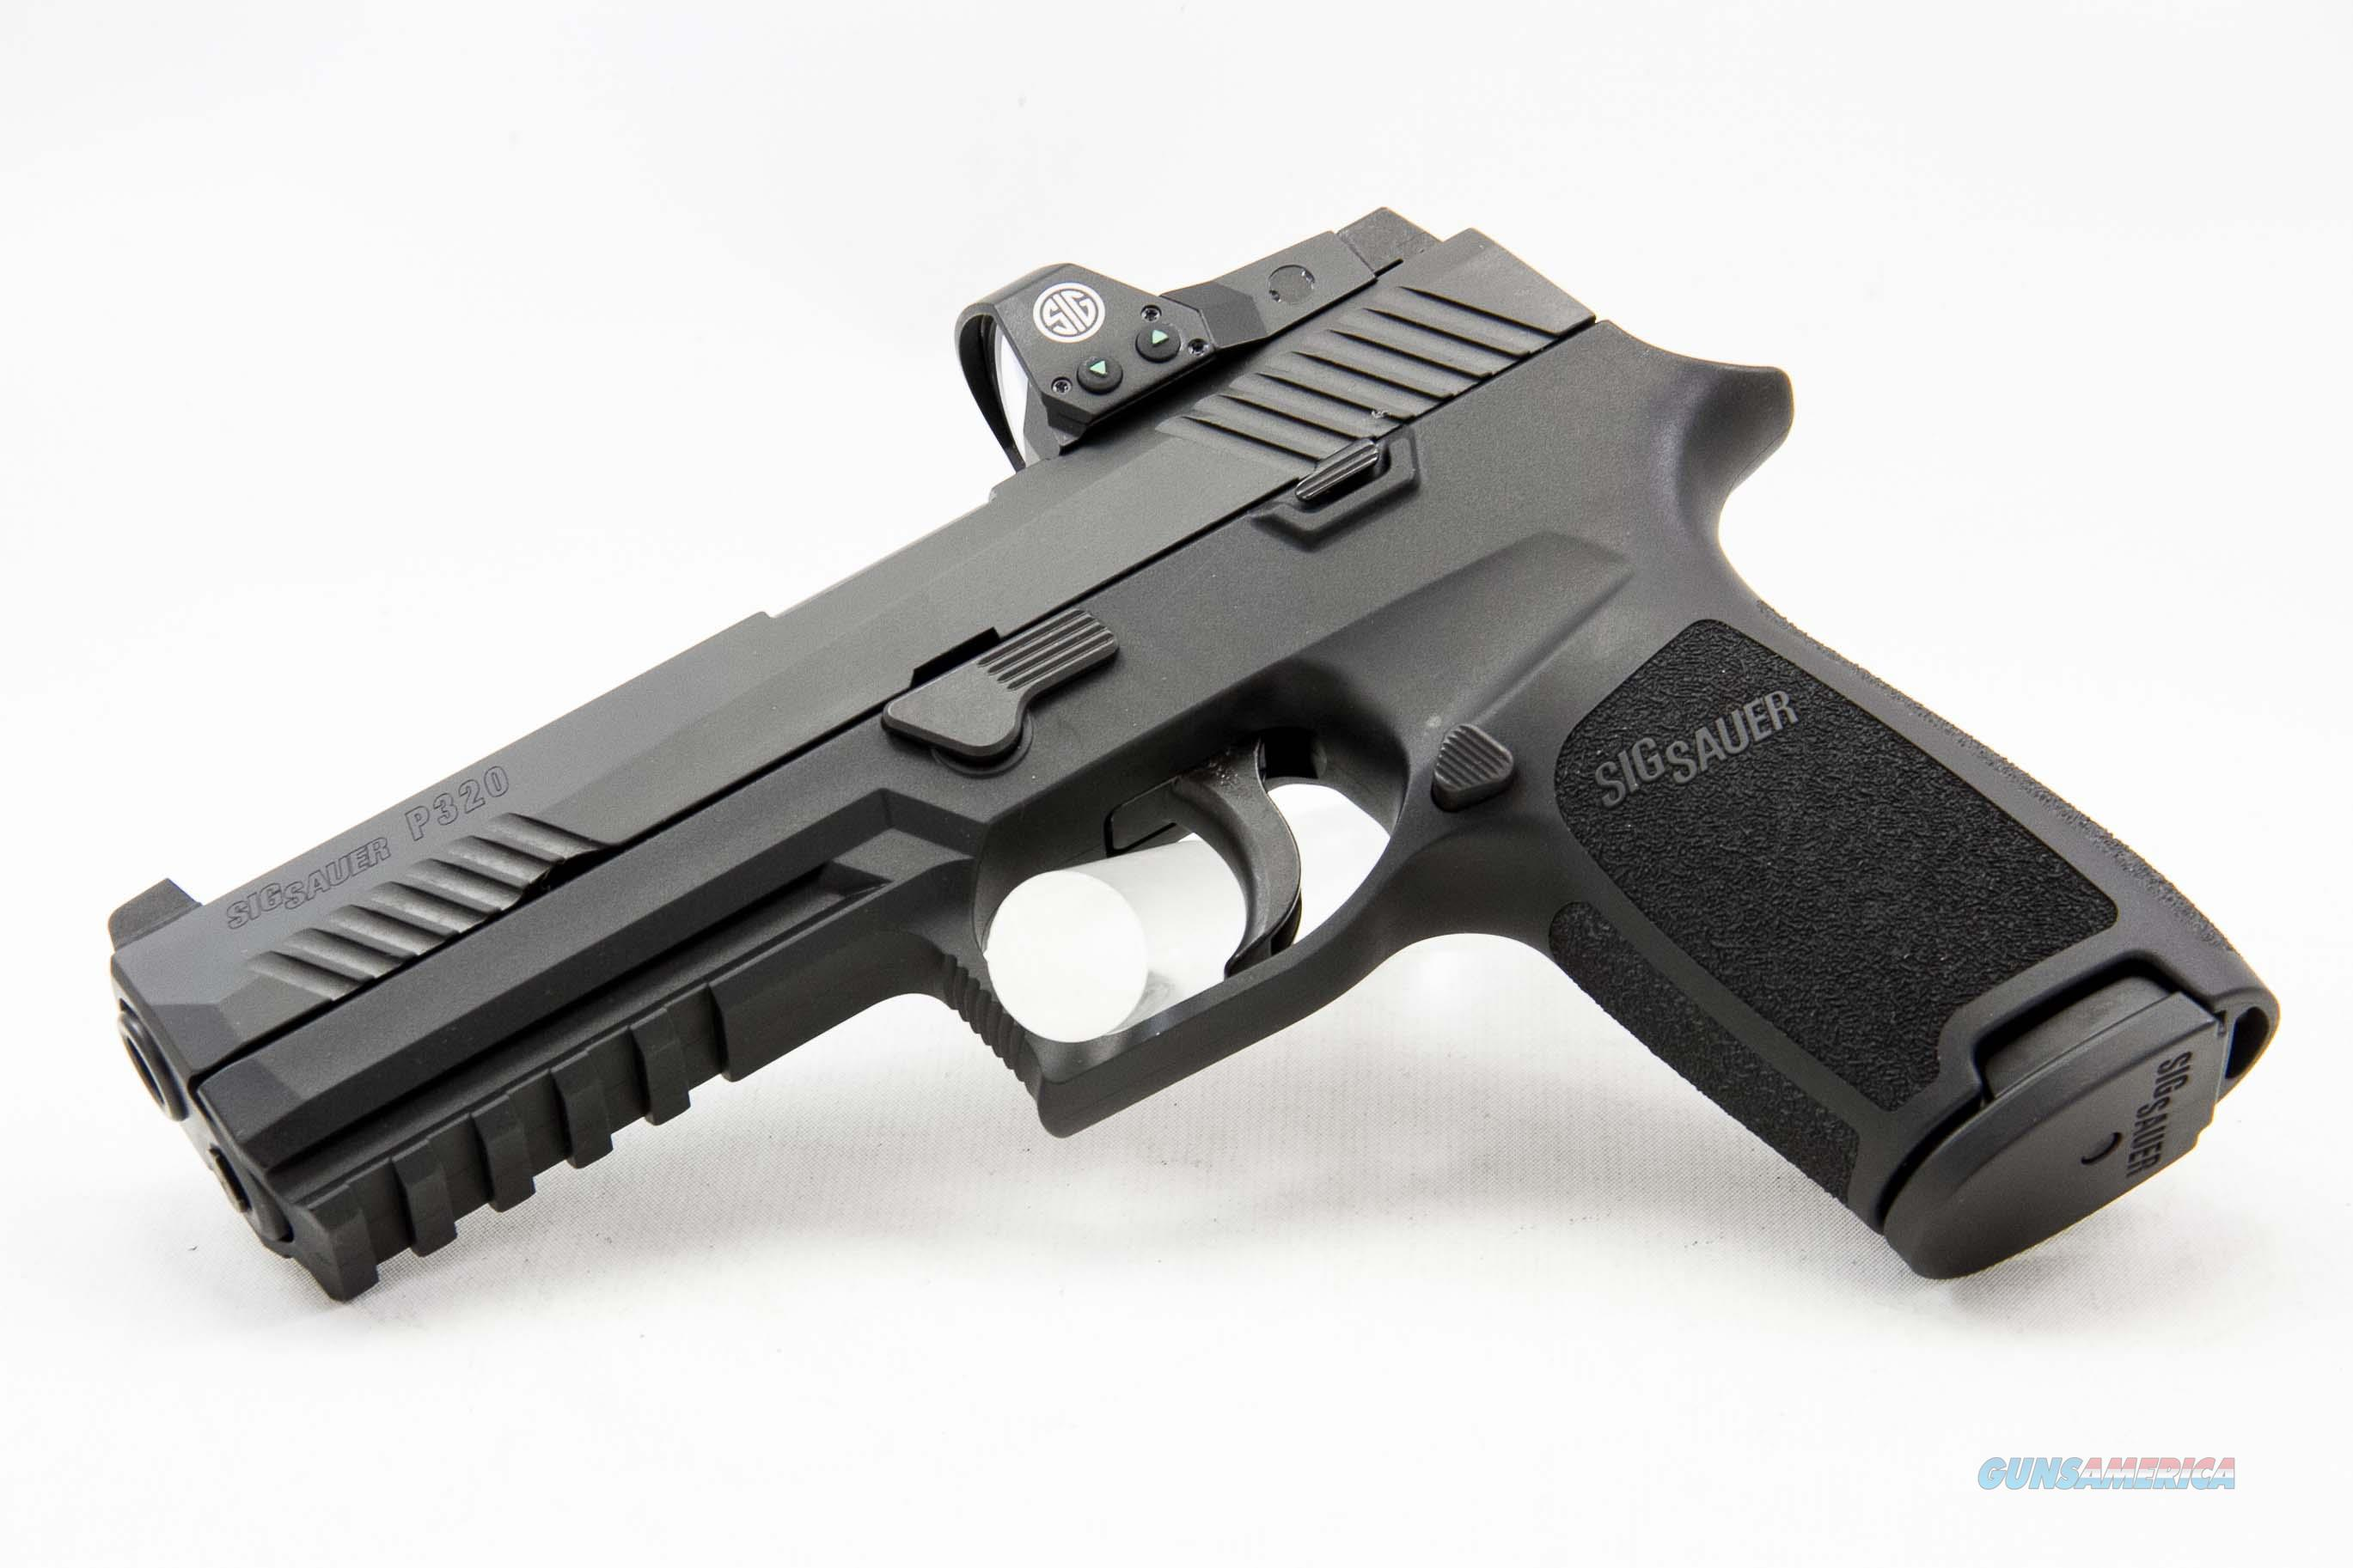 Sig Sauer P320 RX Full Size 9mm NEW ROMEO1 Red Dot Sight Free Shipping  Guns > Pistols > Sig - Sauer/Sigarms Pistols > P320